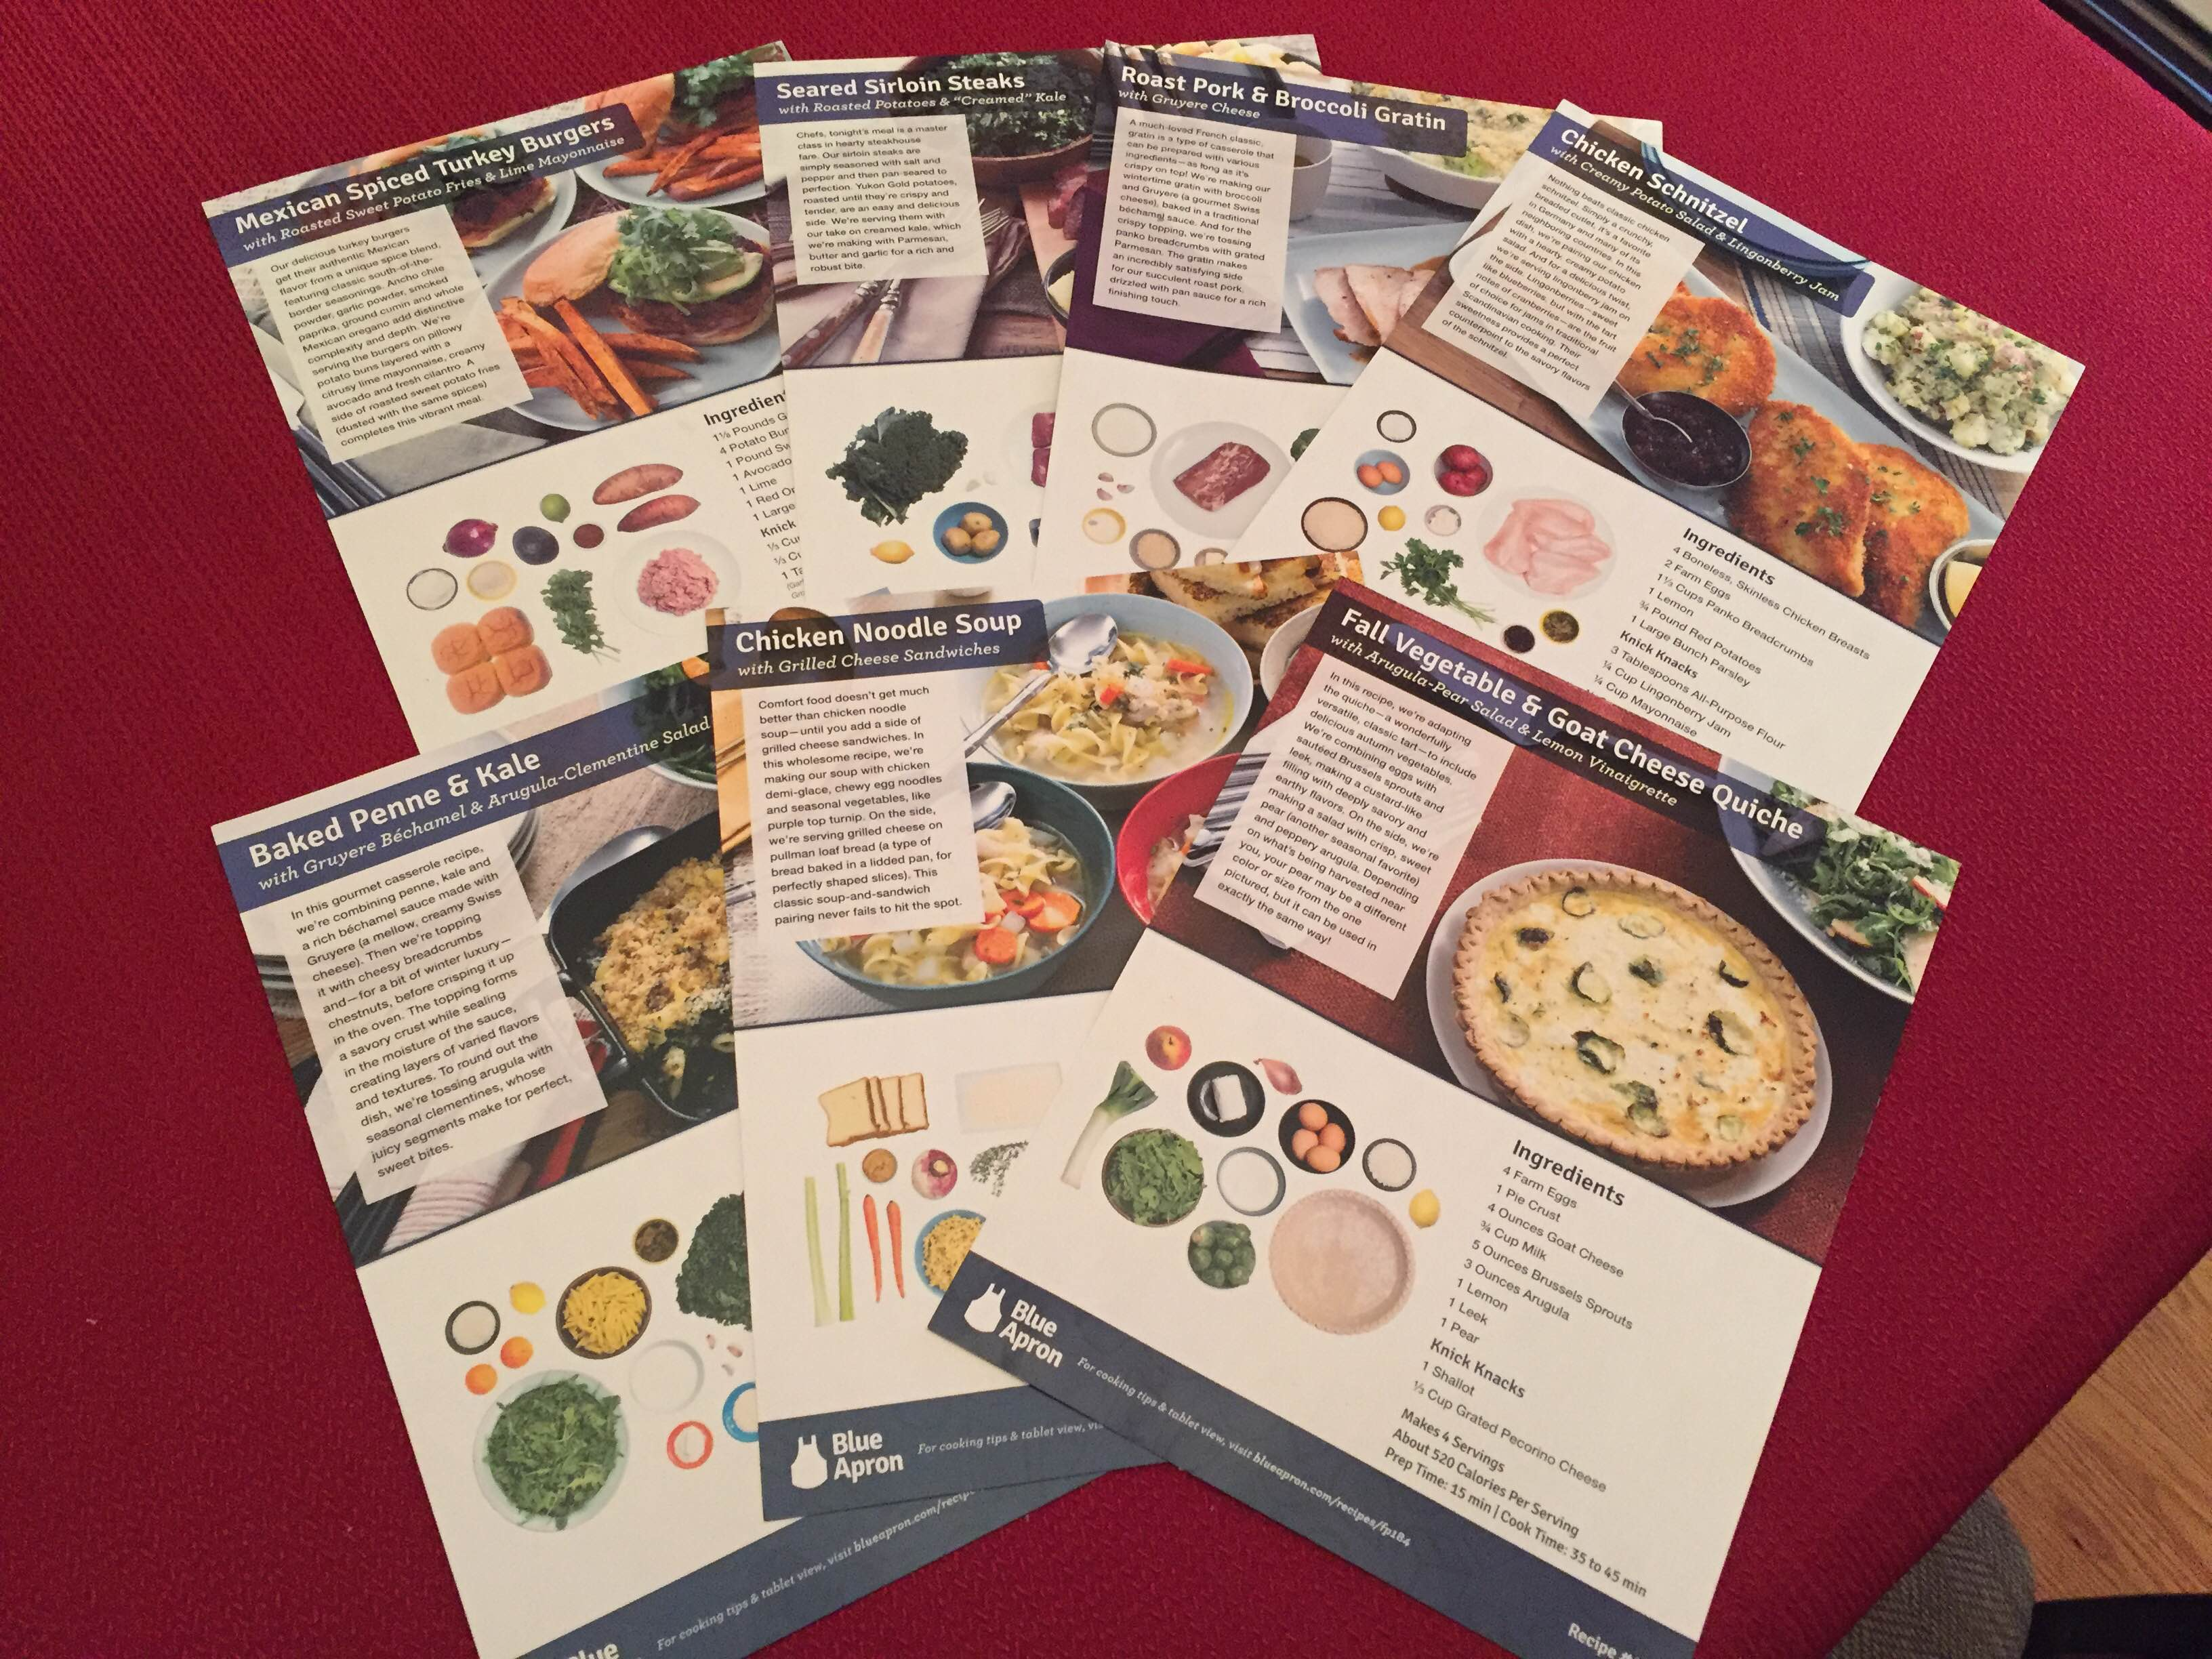 Blue apron blog